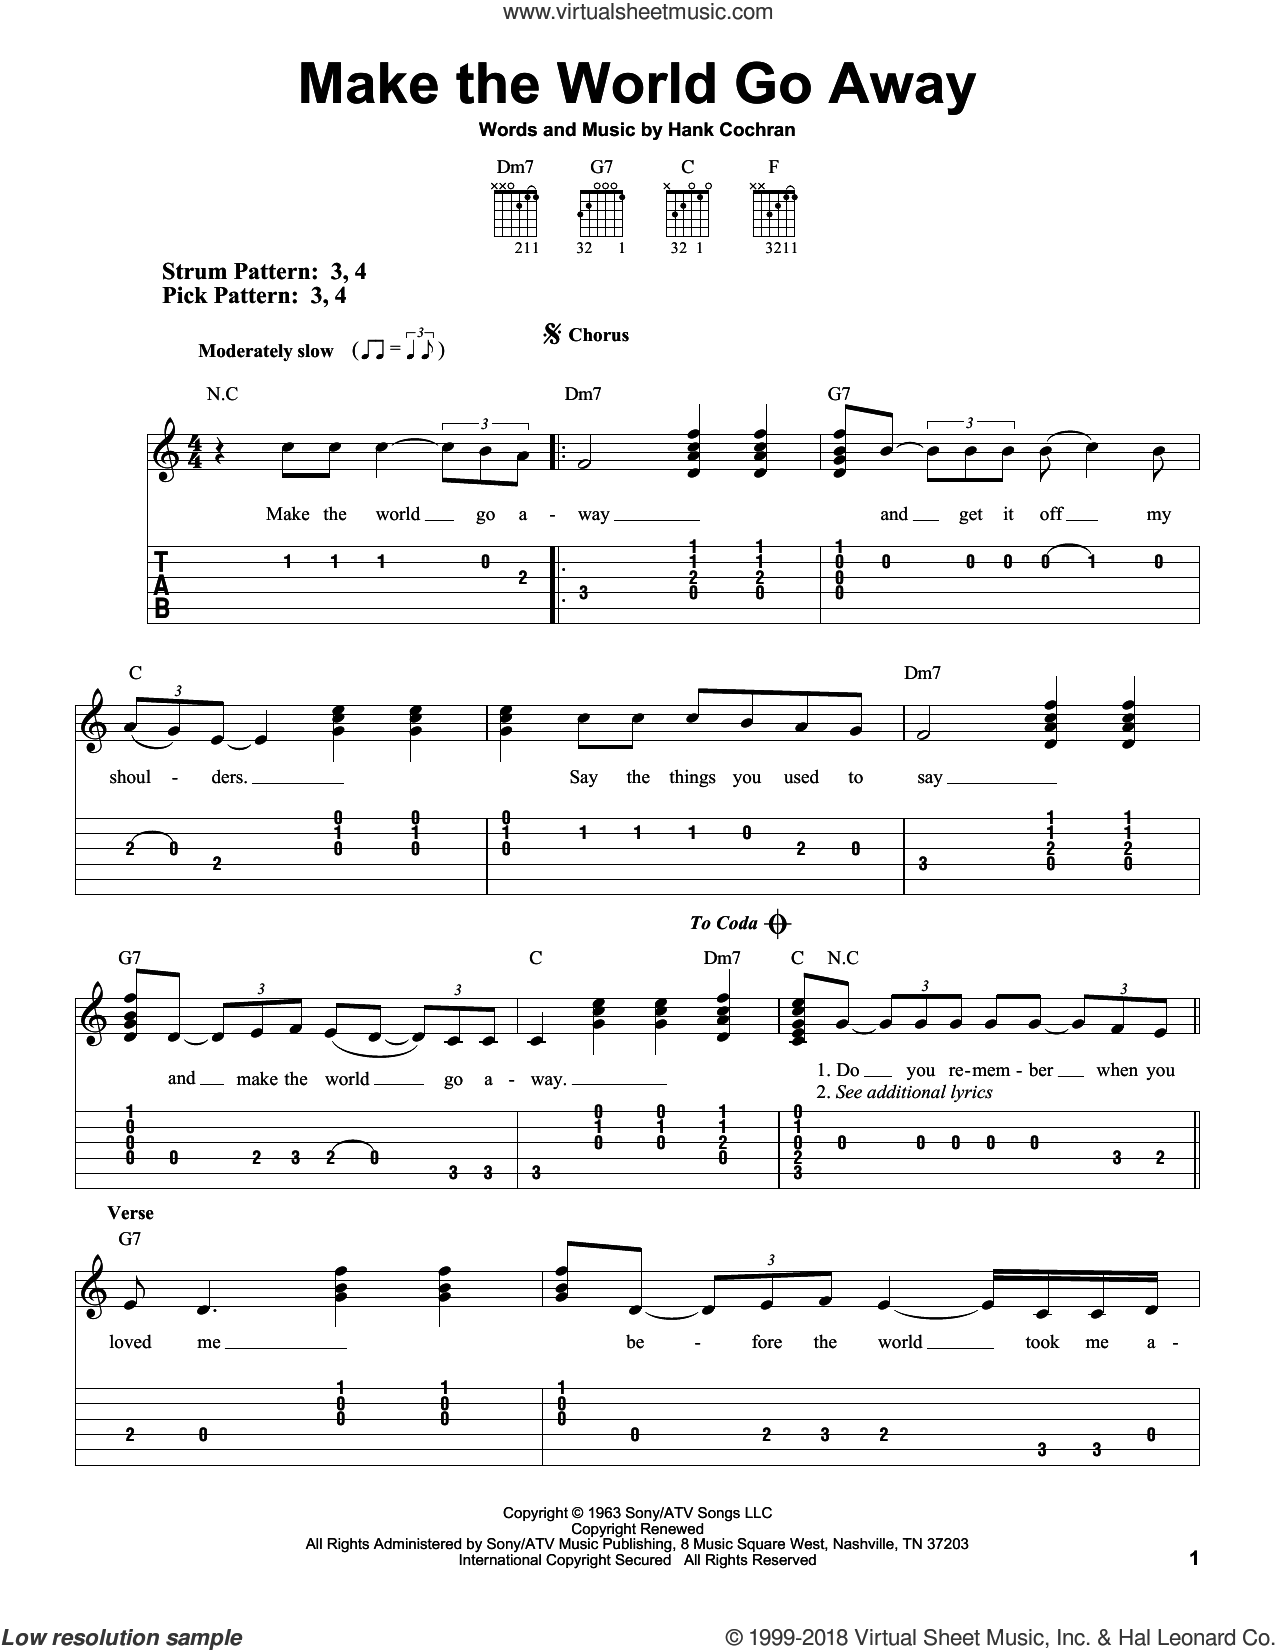 Make The World Go Away sheet music for guitar solo (easy tablature) by Hank Cochran, Eddy Arnold, Elvis Presley and Ray Price. Score Image Preview.